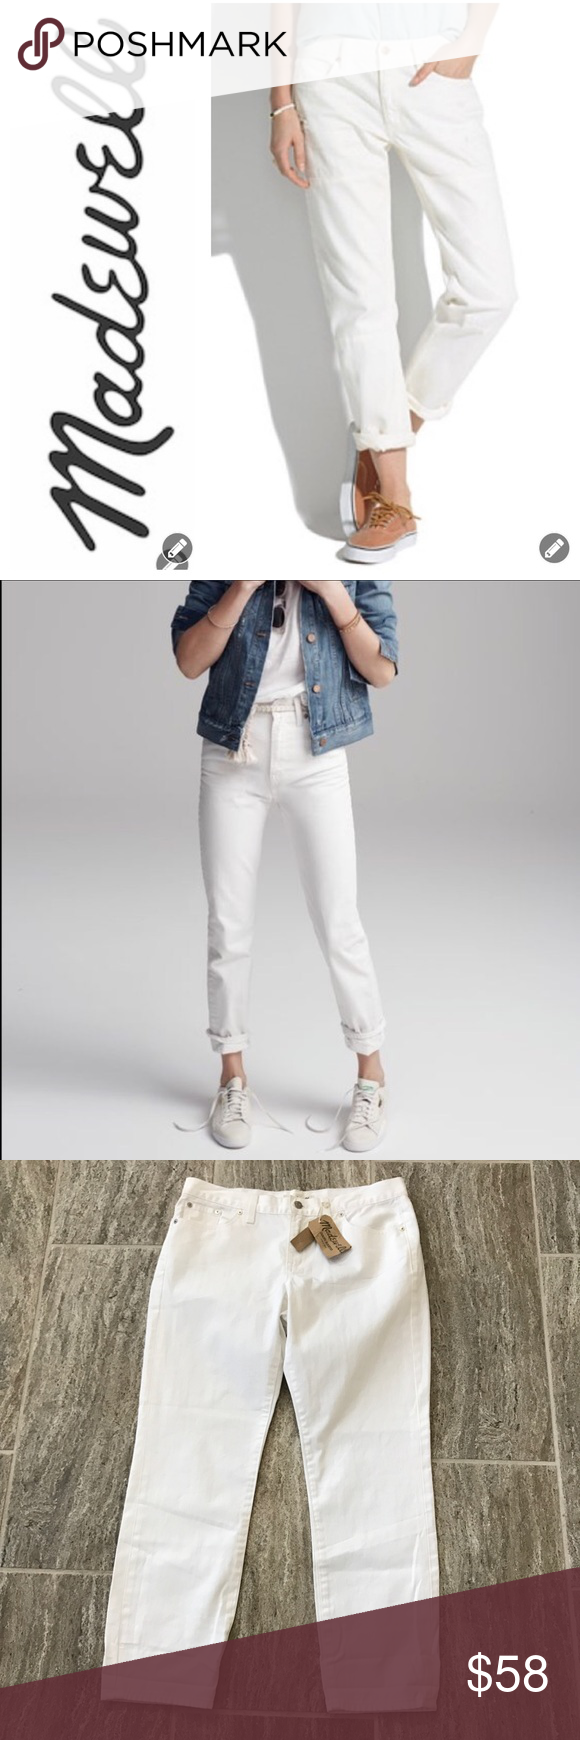 """NWT Madewell White Boy Jean NWT Madewell White Boy Jeans are crisp and clean! These Jeans feature a classic 5 pocket silhouette. Silver Hardware. Belt loops. Tonal stitching. Embroidered M Madewell logo on rear pocket. Front fly zip with one button closure. Relaxed through the hip and thigh. Can be worn rolled or straight. Rise 9 3/4"""" Inseam 27"""" waist 29"""" Leg opening 14"""". Smoke Free Home. Super adorable. Madewell Jeans Boyfriend"""